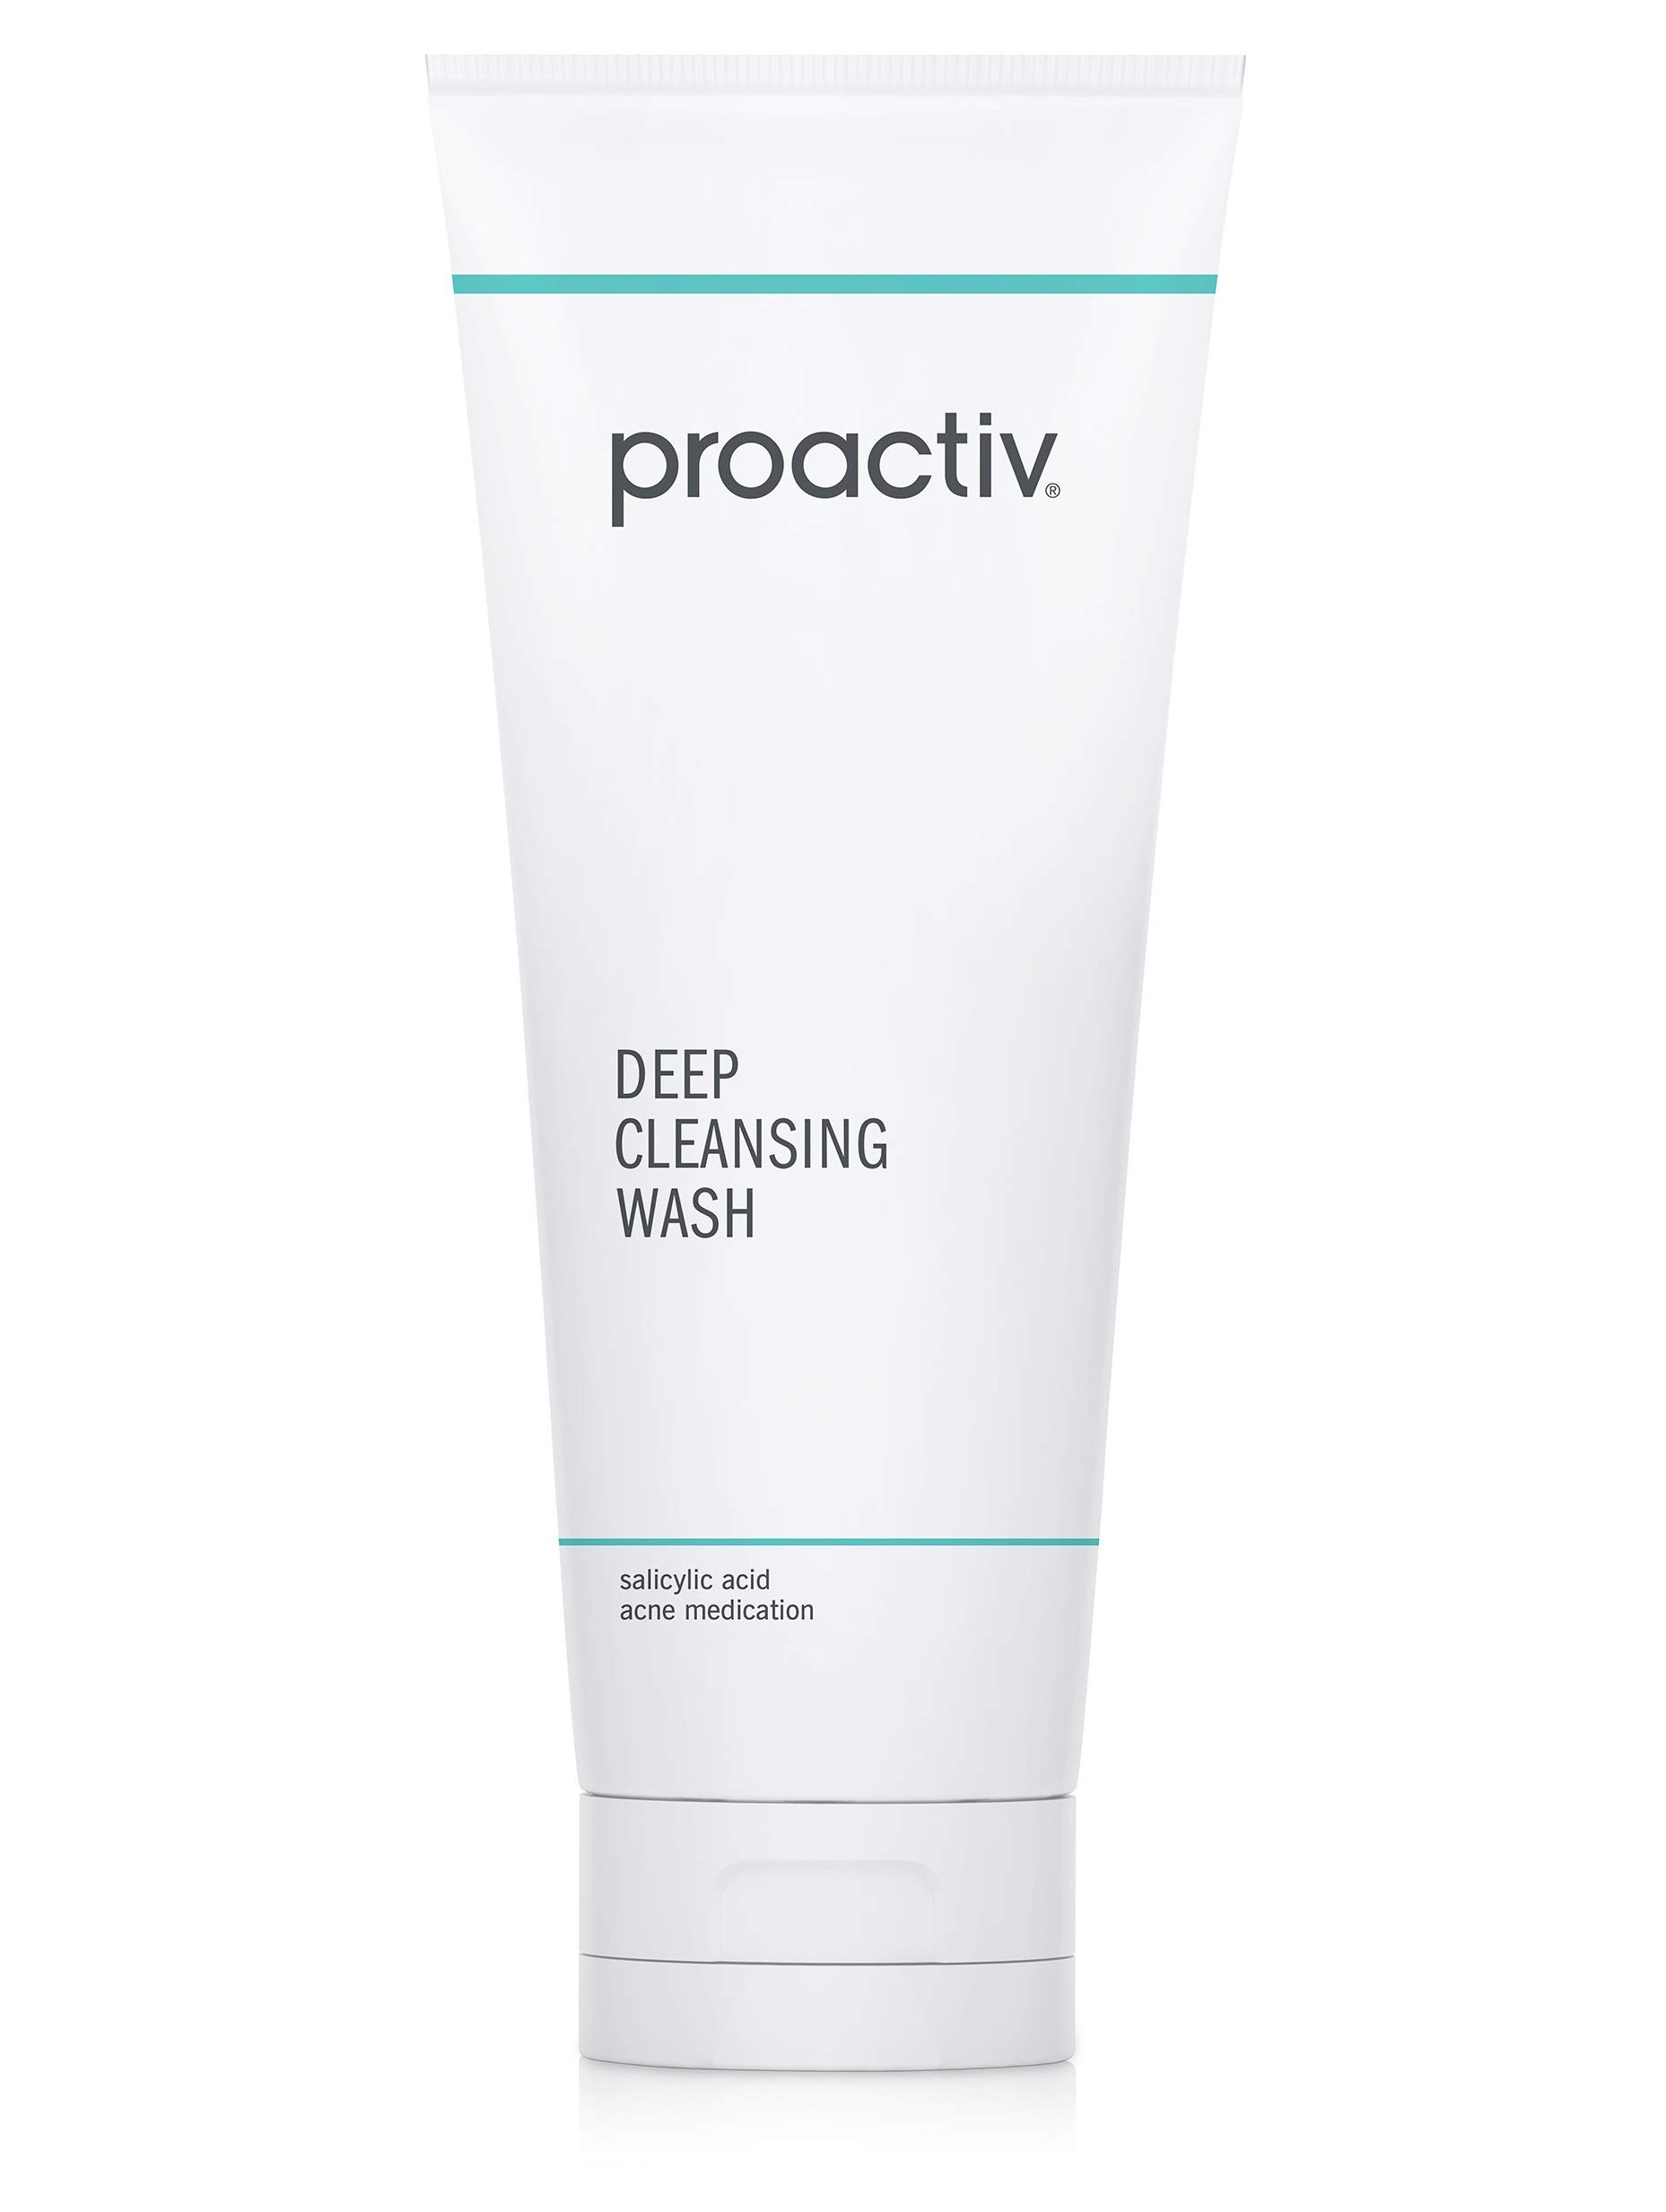 Proactiv Deep Cleansing Wash, 9 oz by Proactiv